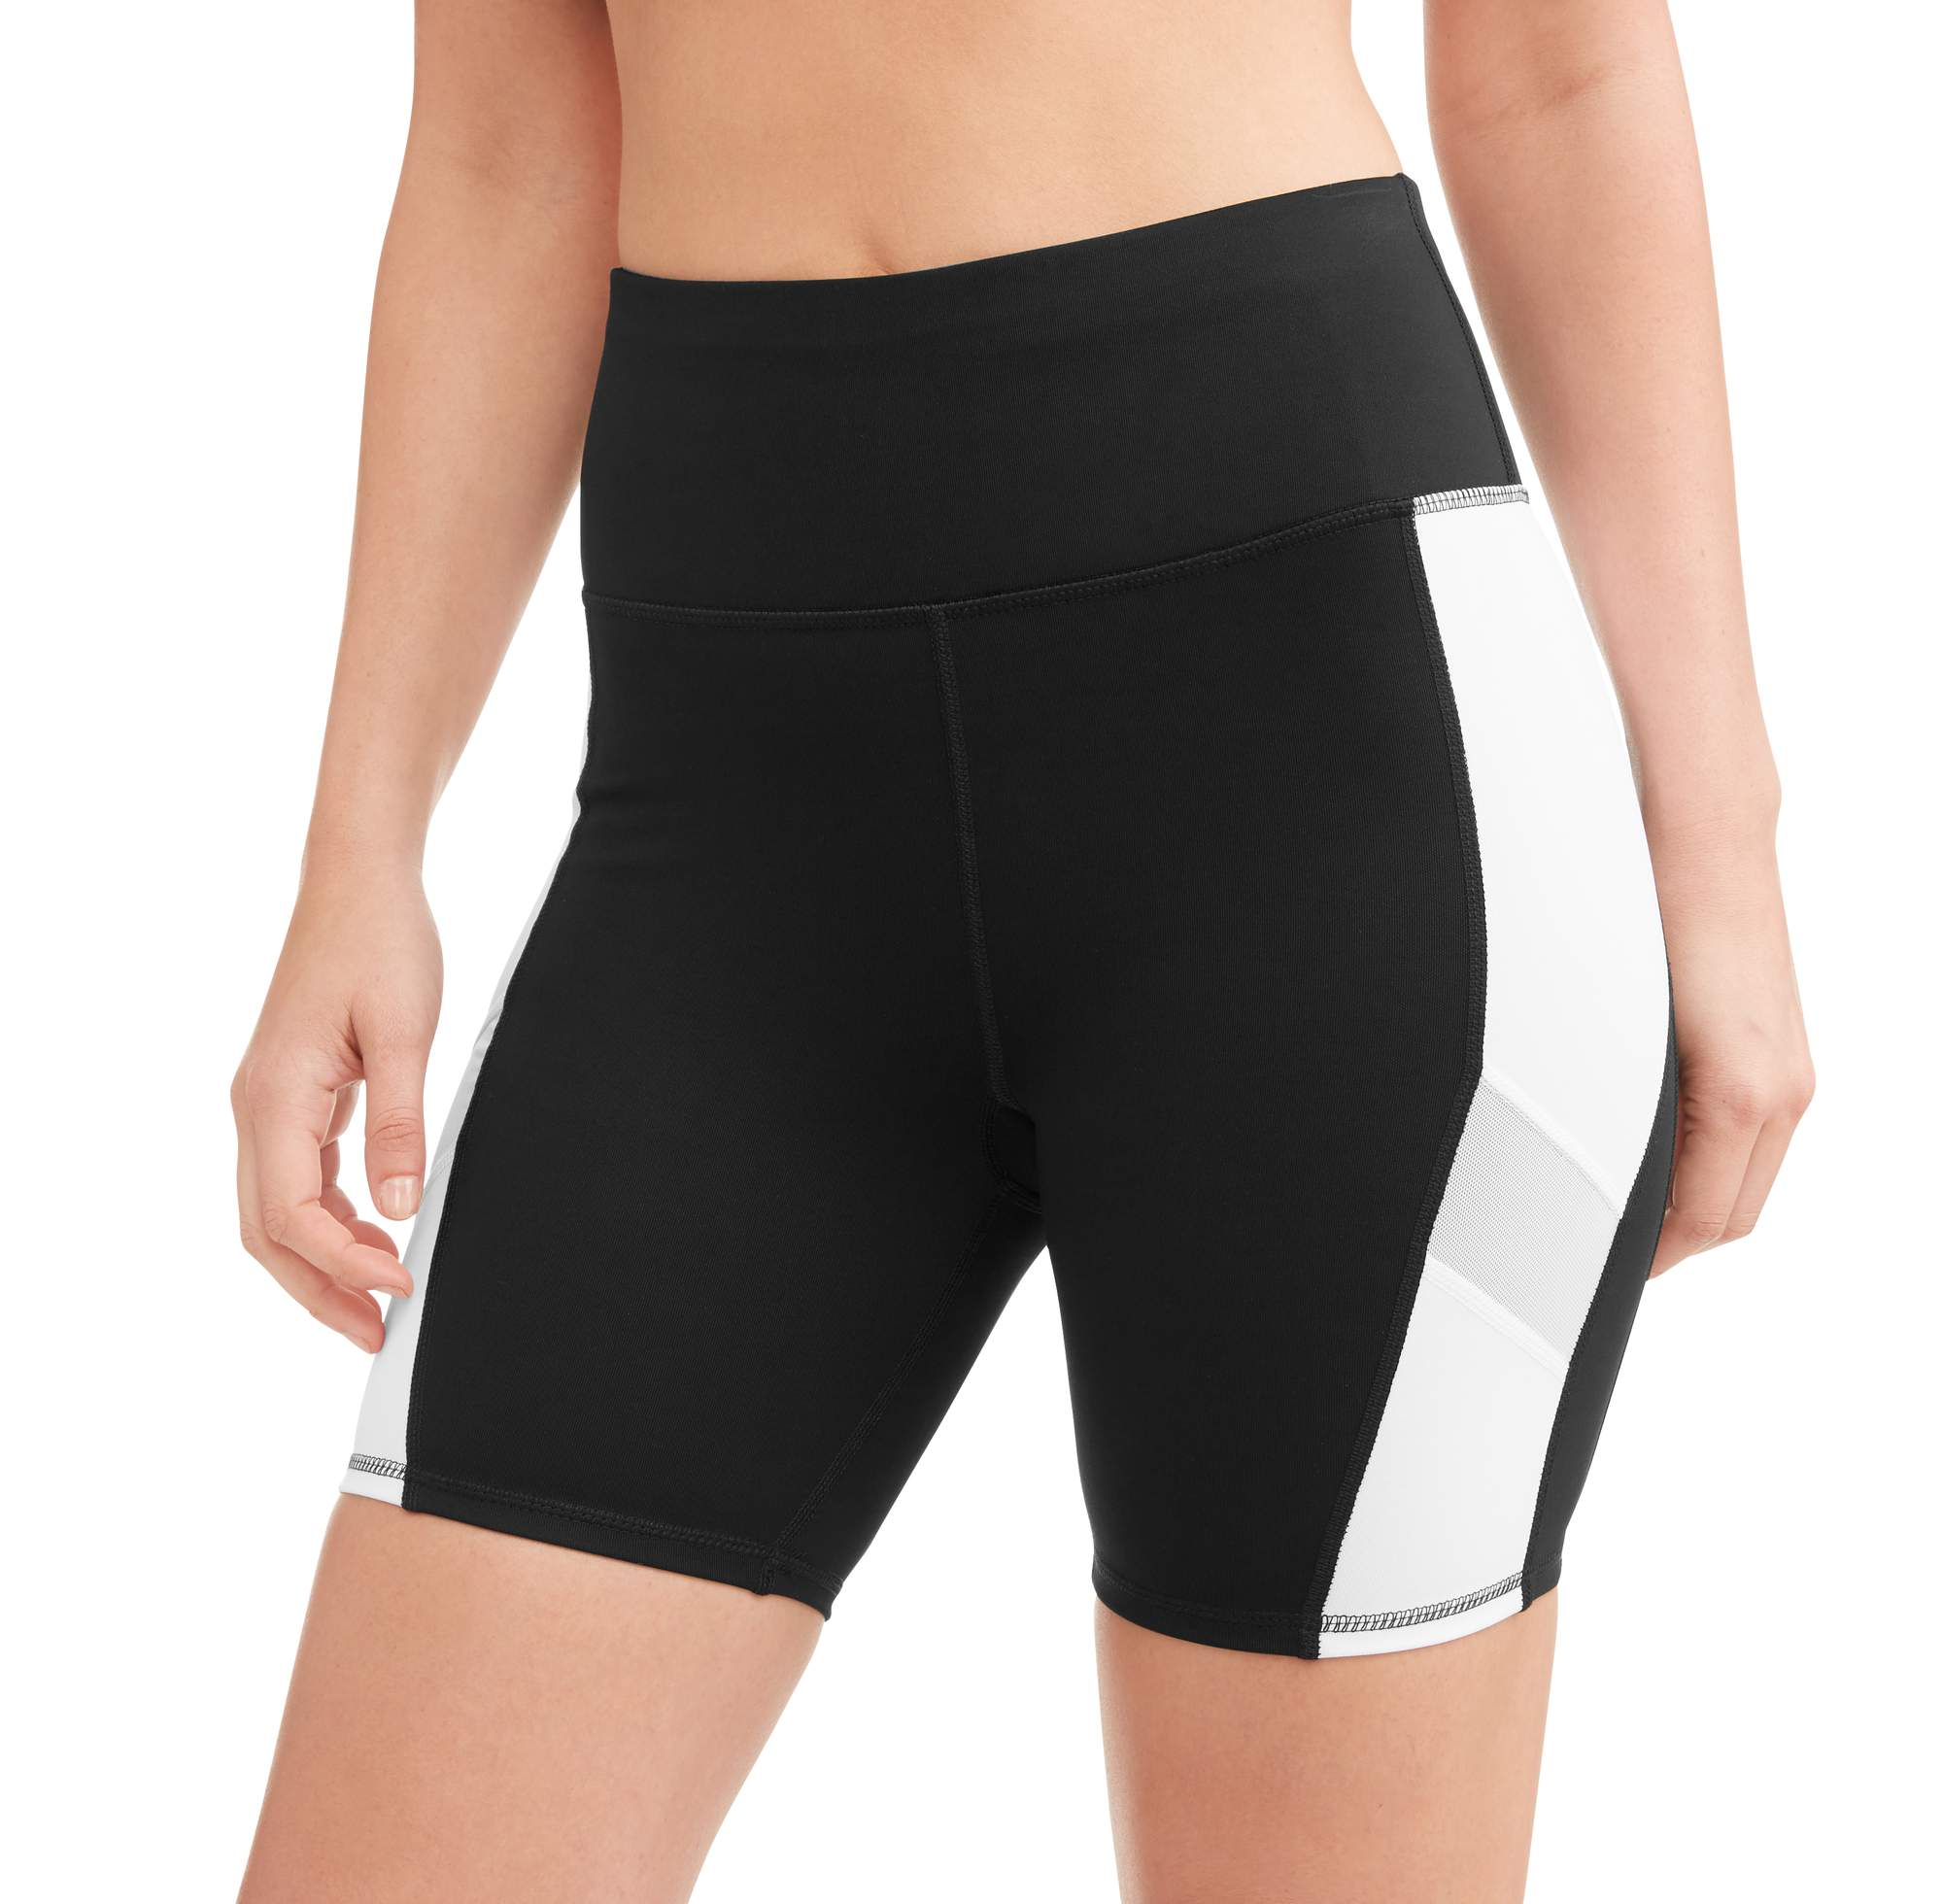 Avia Women's Core Flex Tech Compression Bike Short with Media Pocket